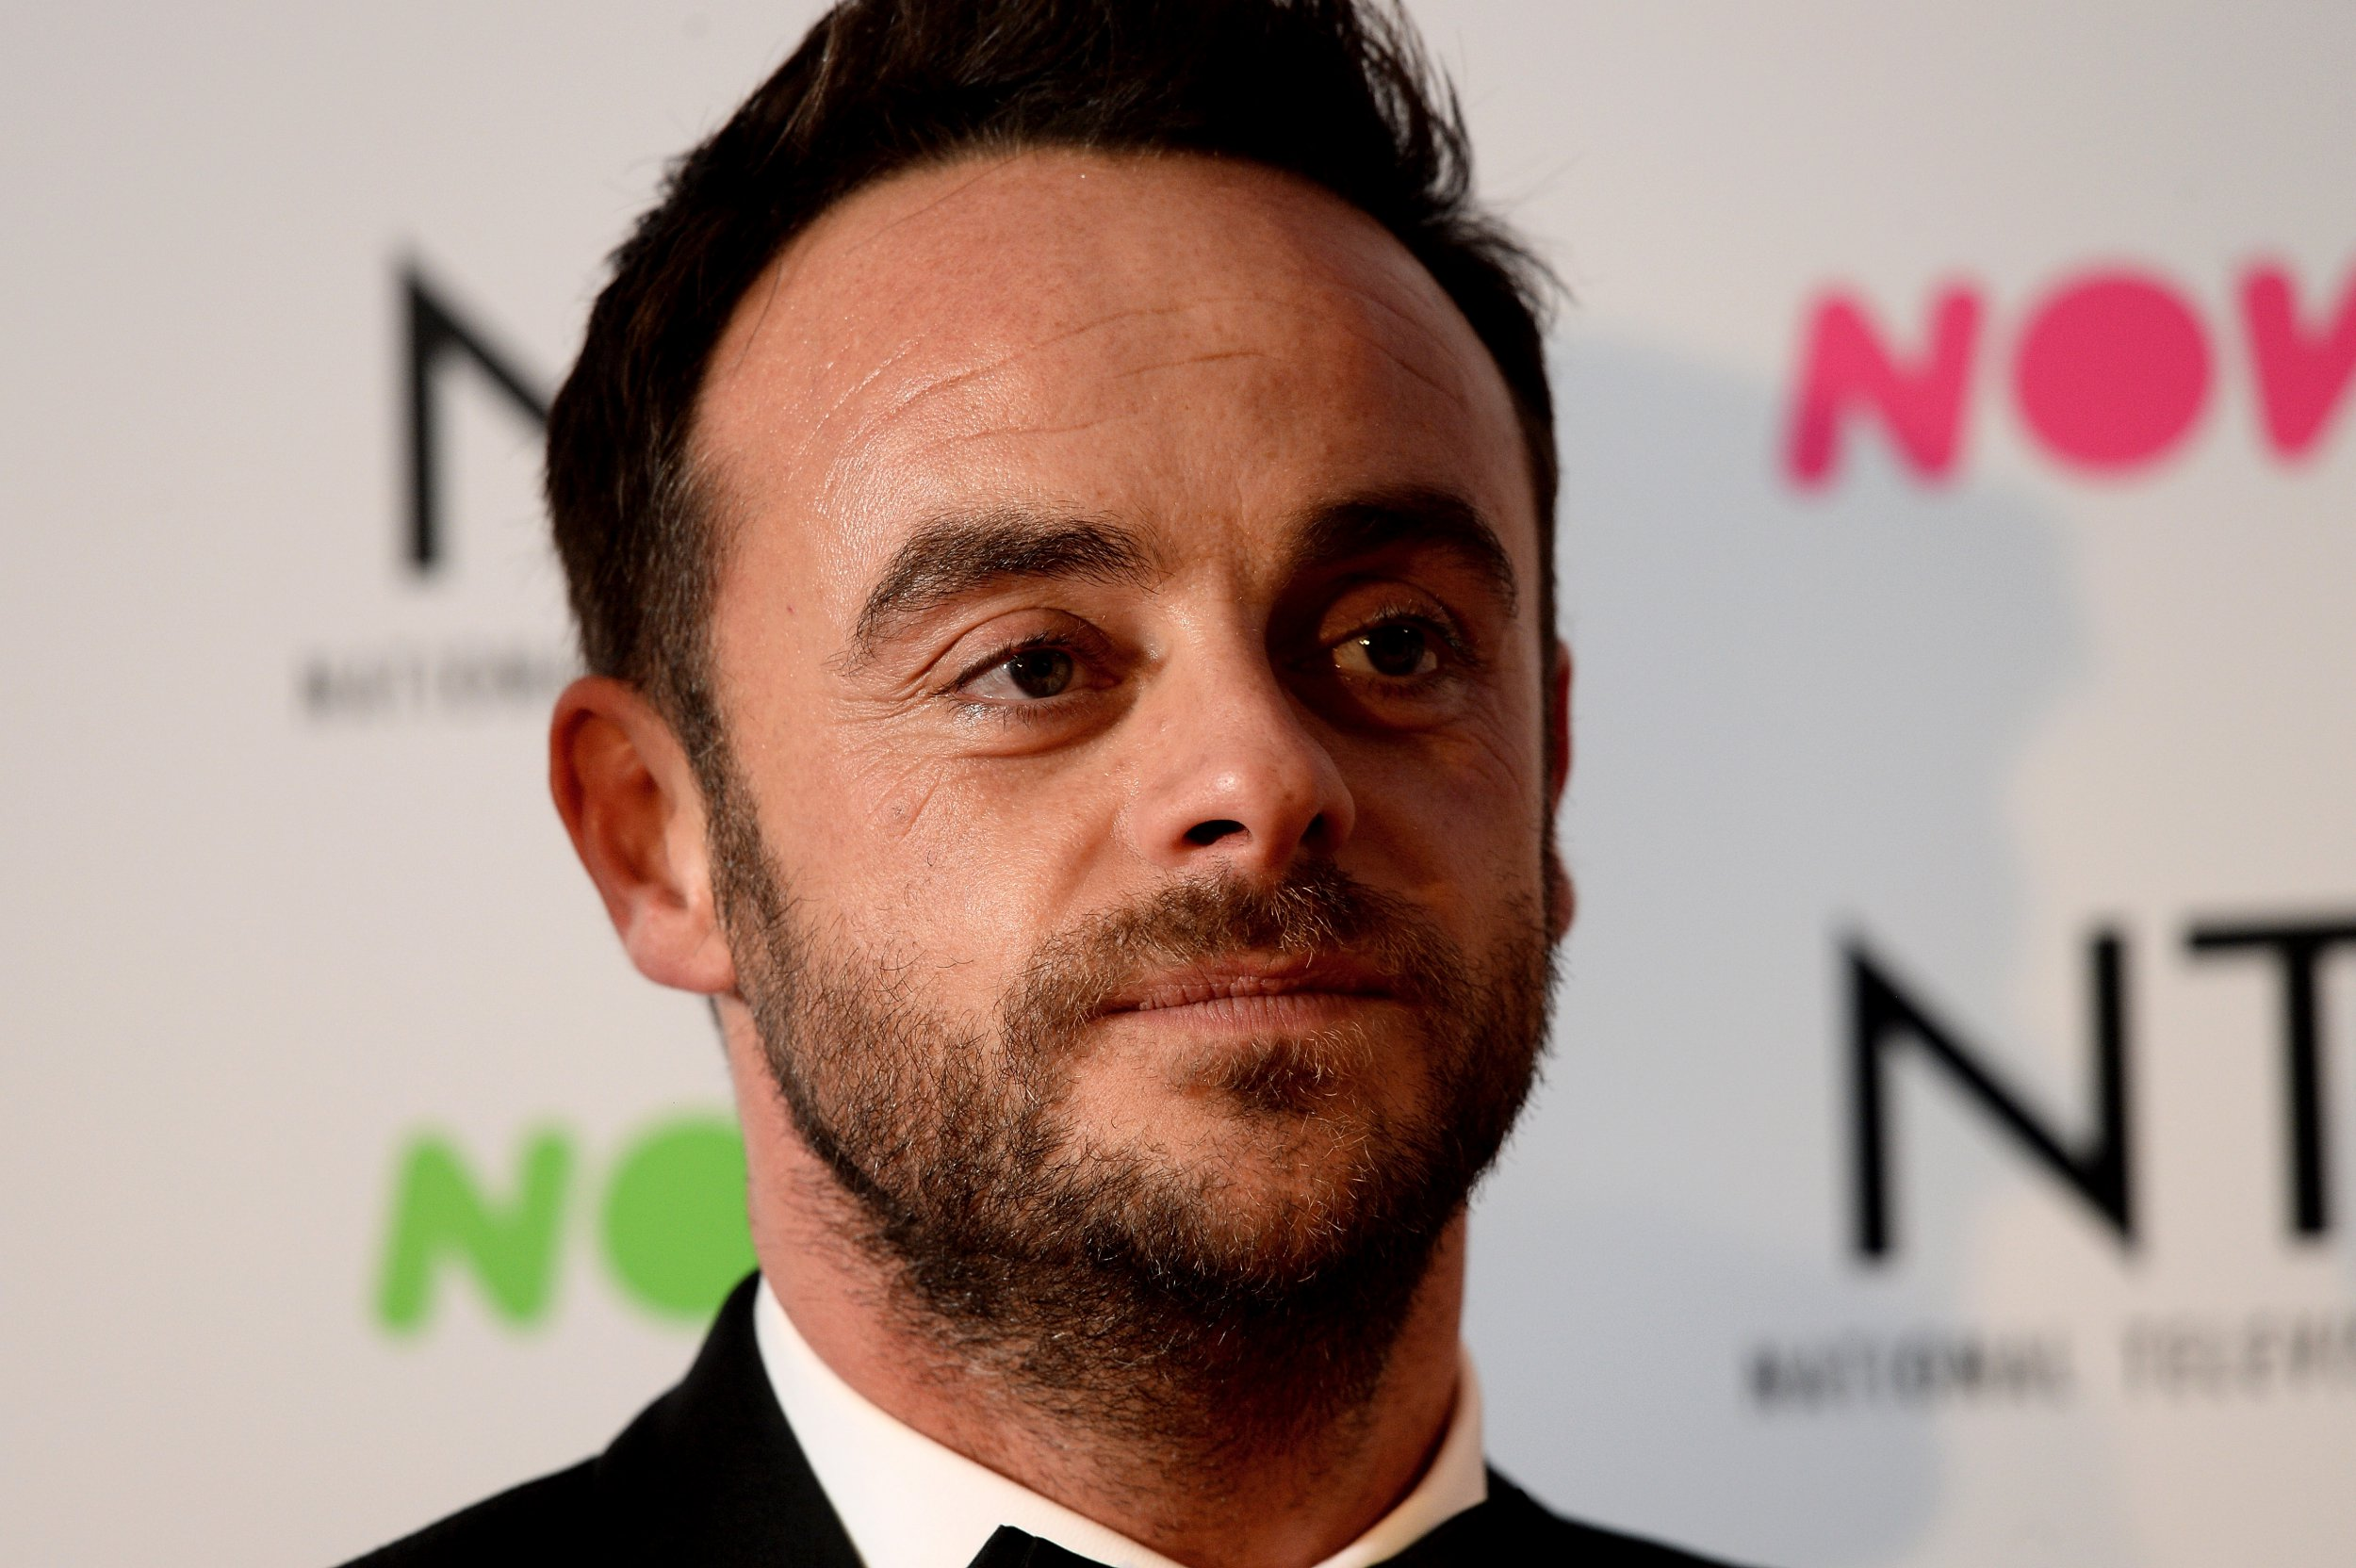 Ant McPartlin 'expected to plead guilty' as he heads to court for drink driving charge